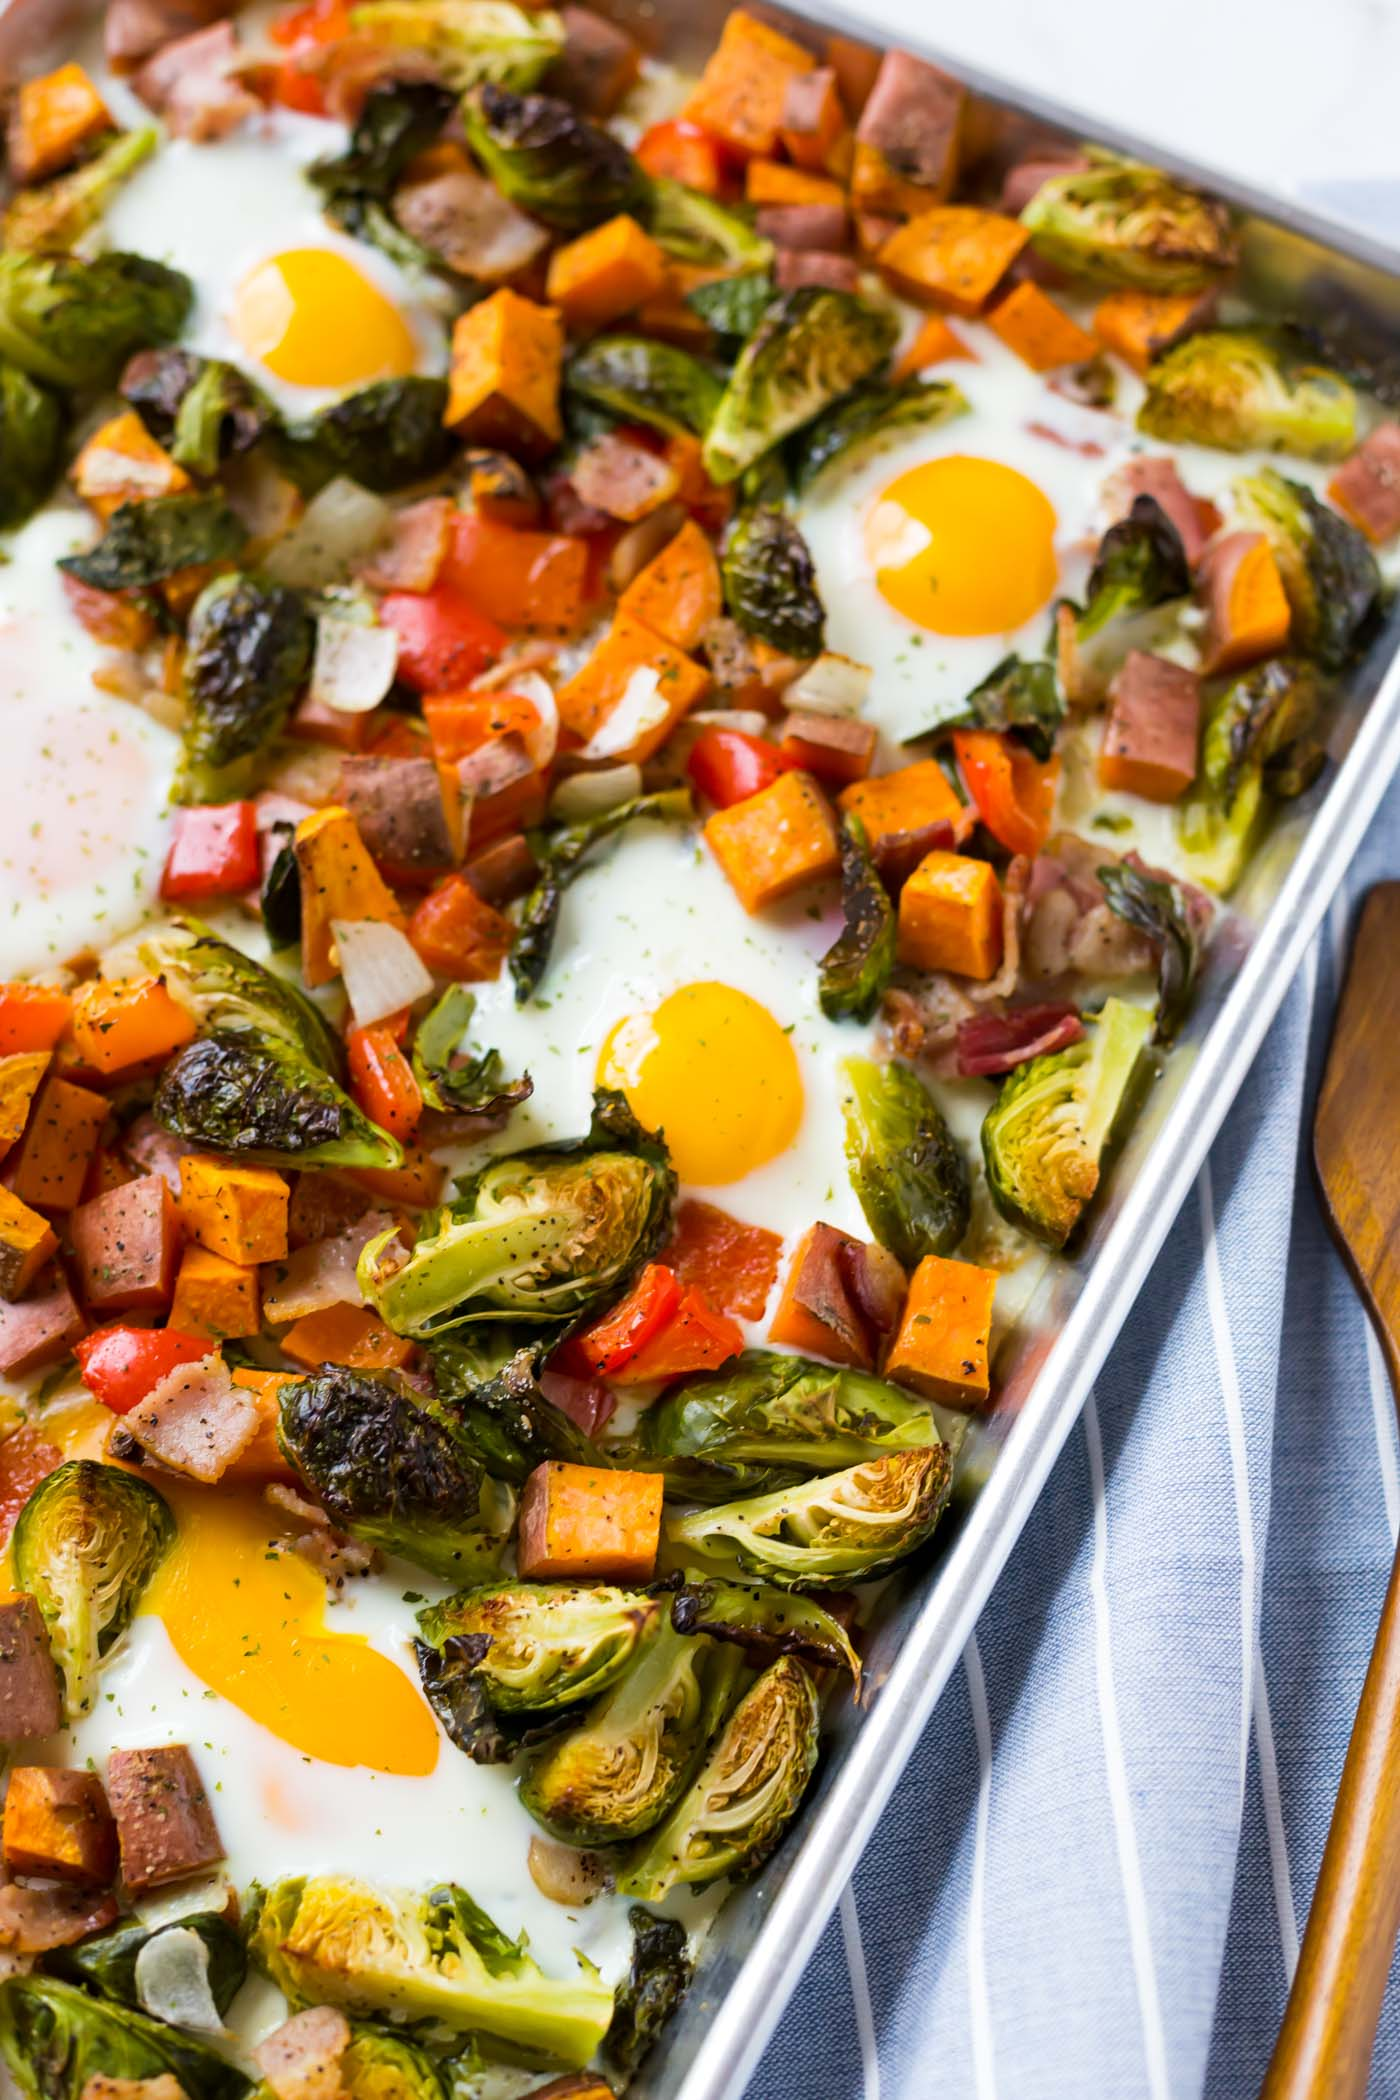 Eggs, brussel sprouts, sweet potatoes, bacon, and bell peppers combined on sheet pan.